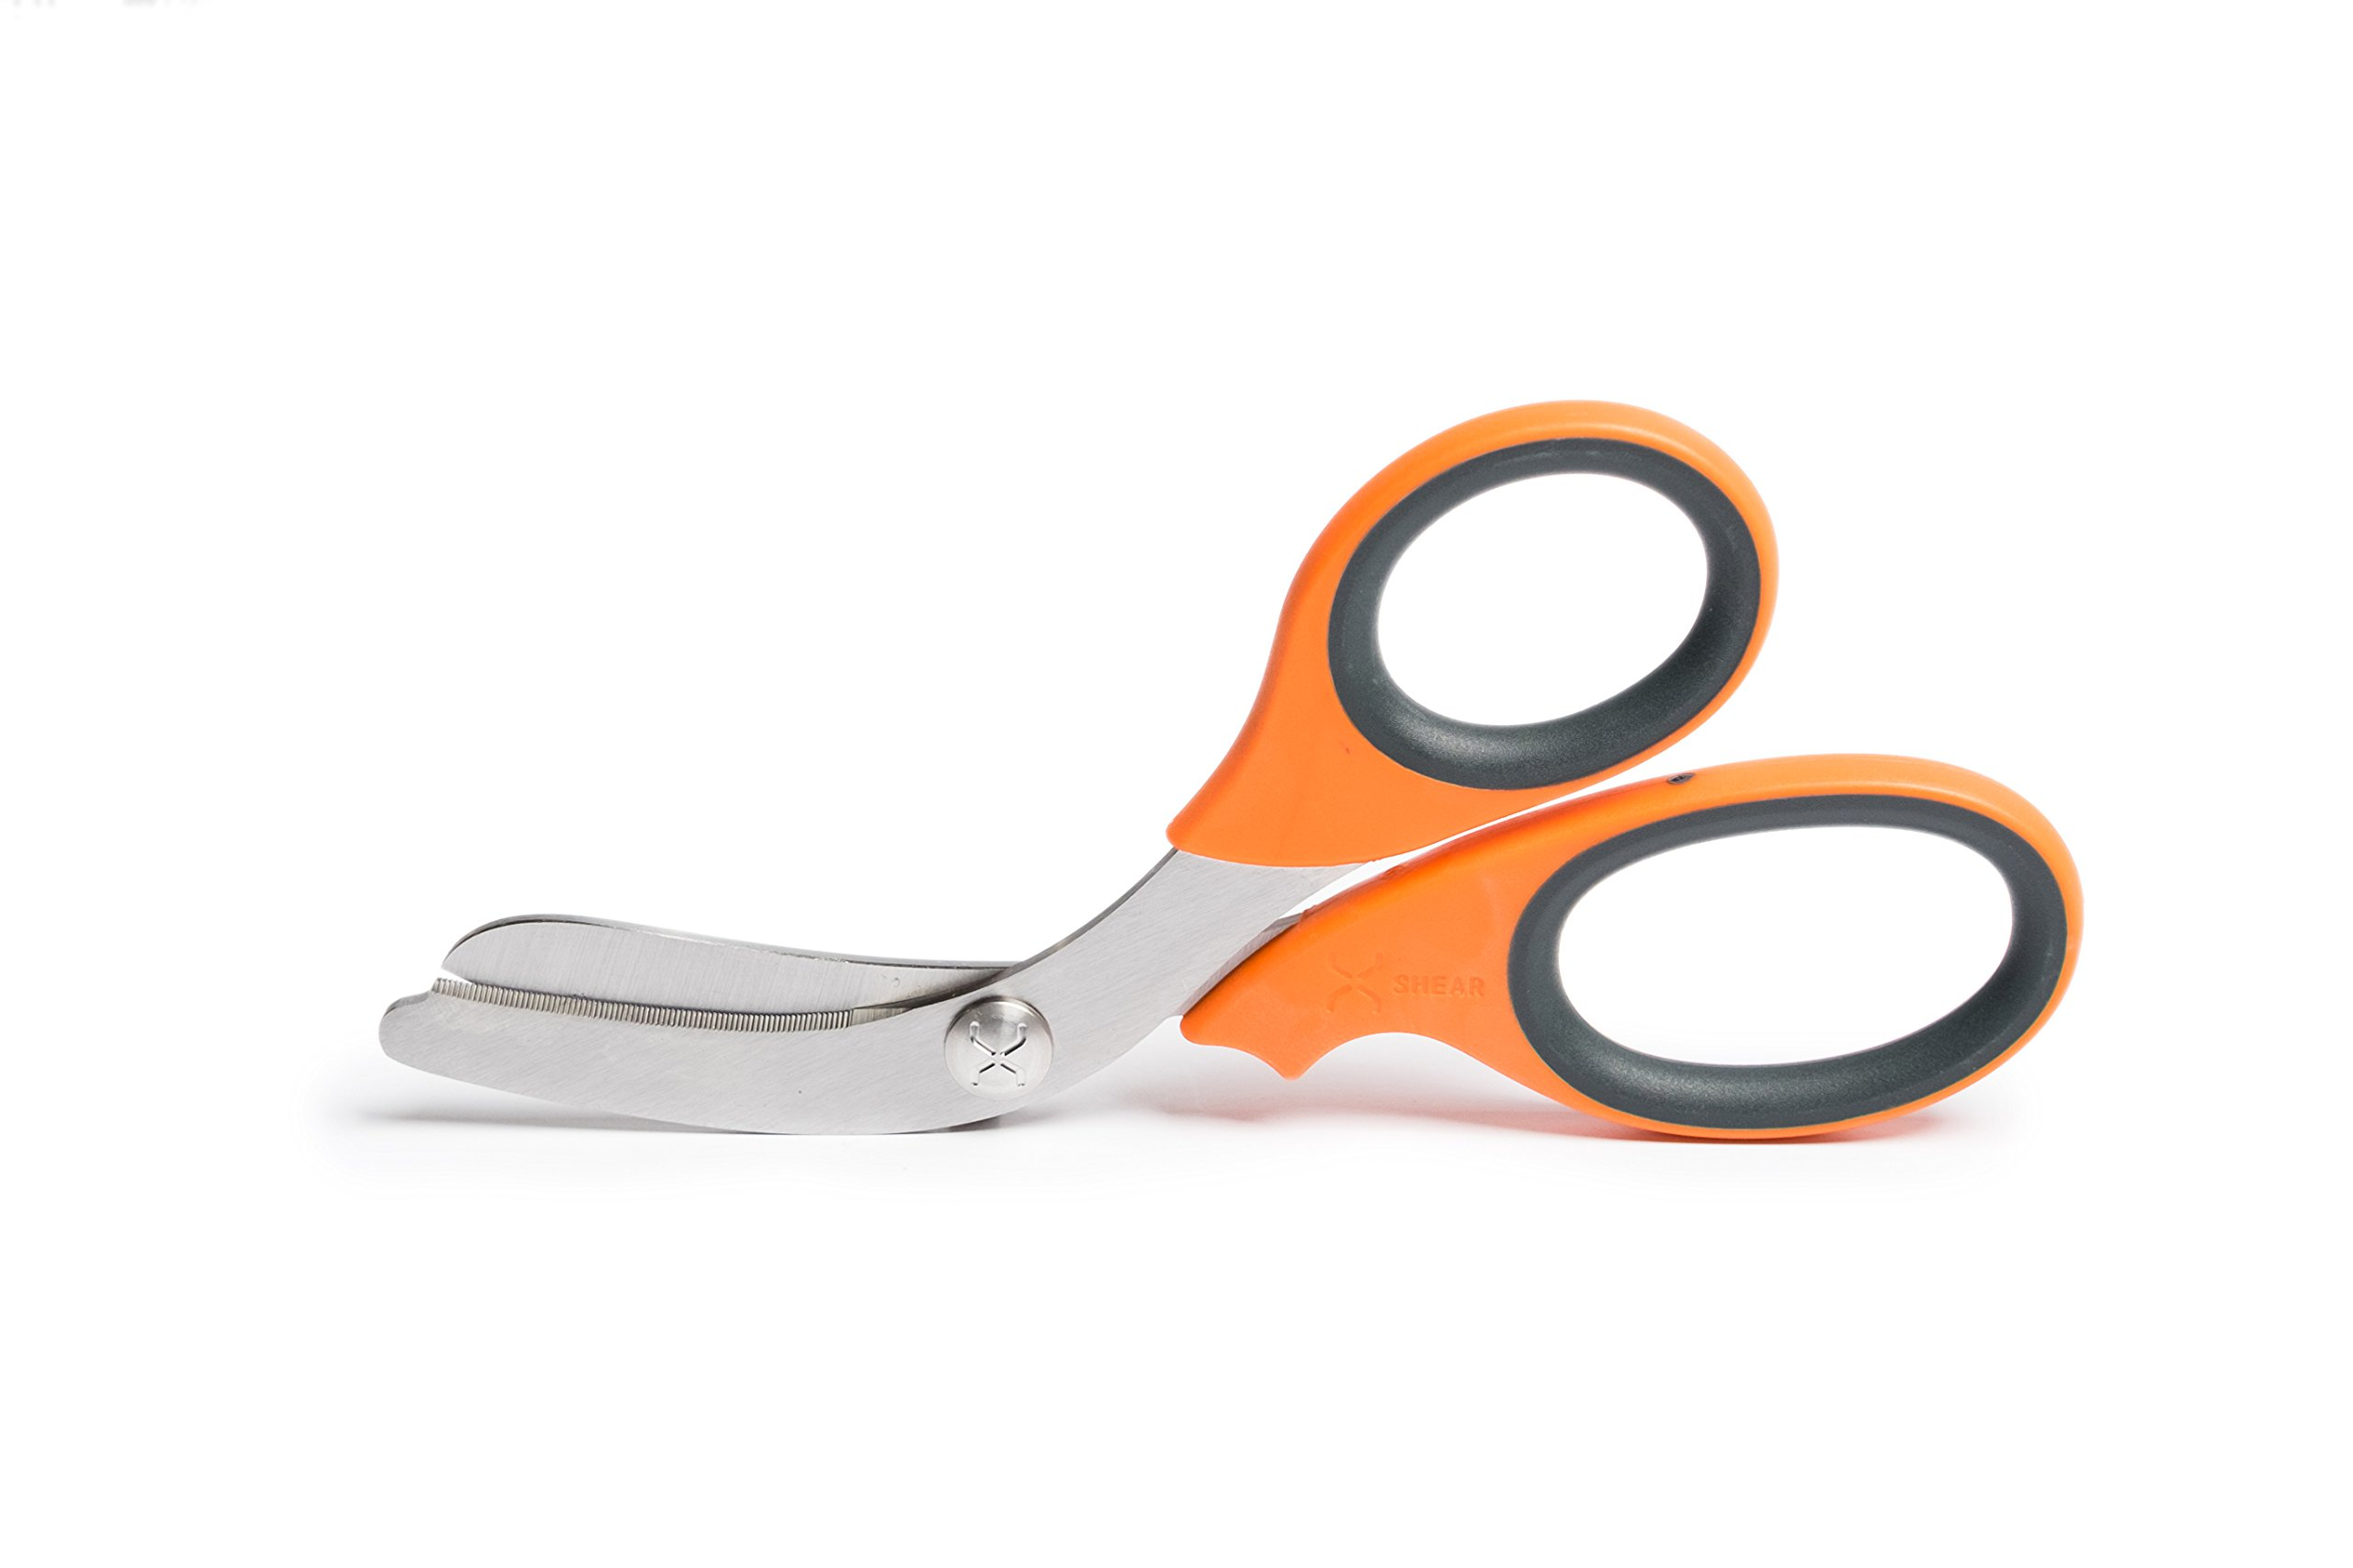 """XSHEAR 7.5"""" Extreme Duty Trauma Shears. Tough and Durable Medical Scissors for the Paramedic, EMT, Nurse or any Emergency Healthcare Provider - Orange/Gray"""